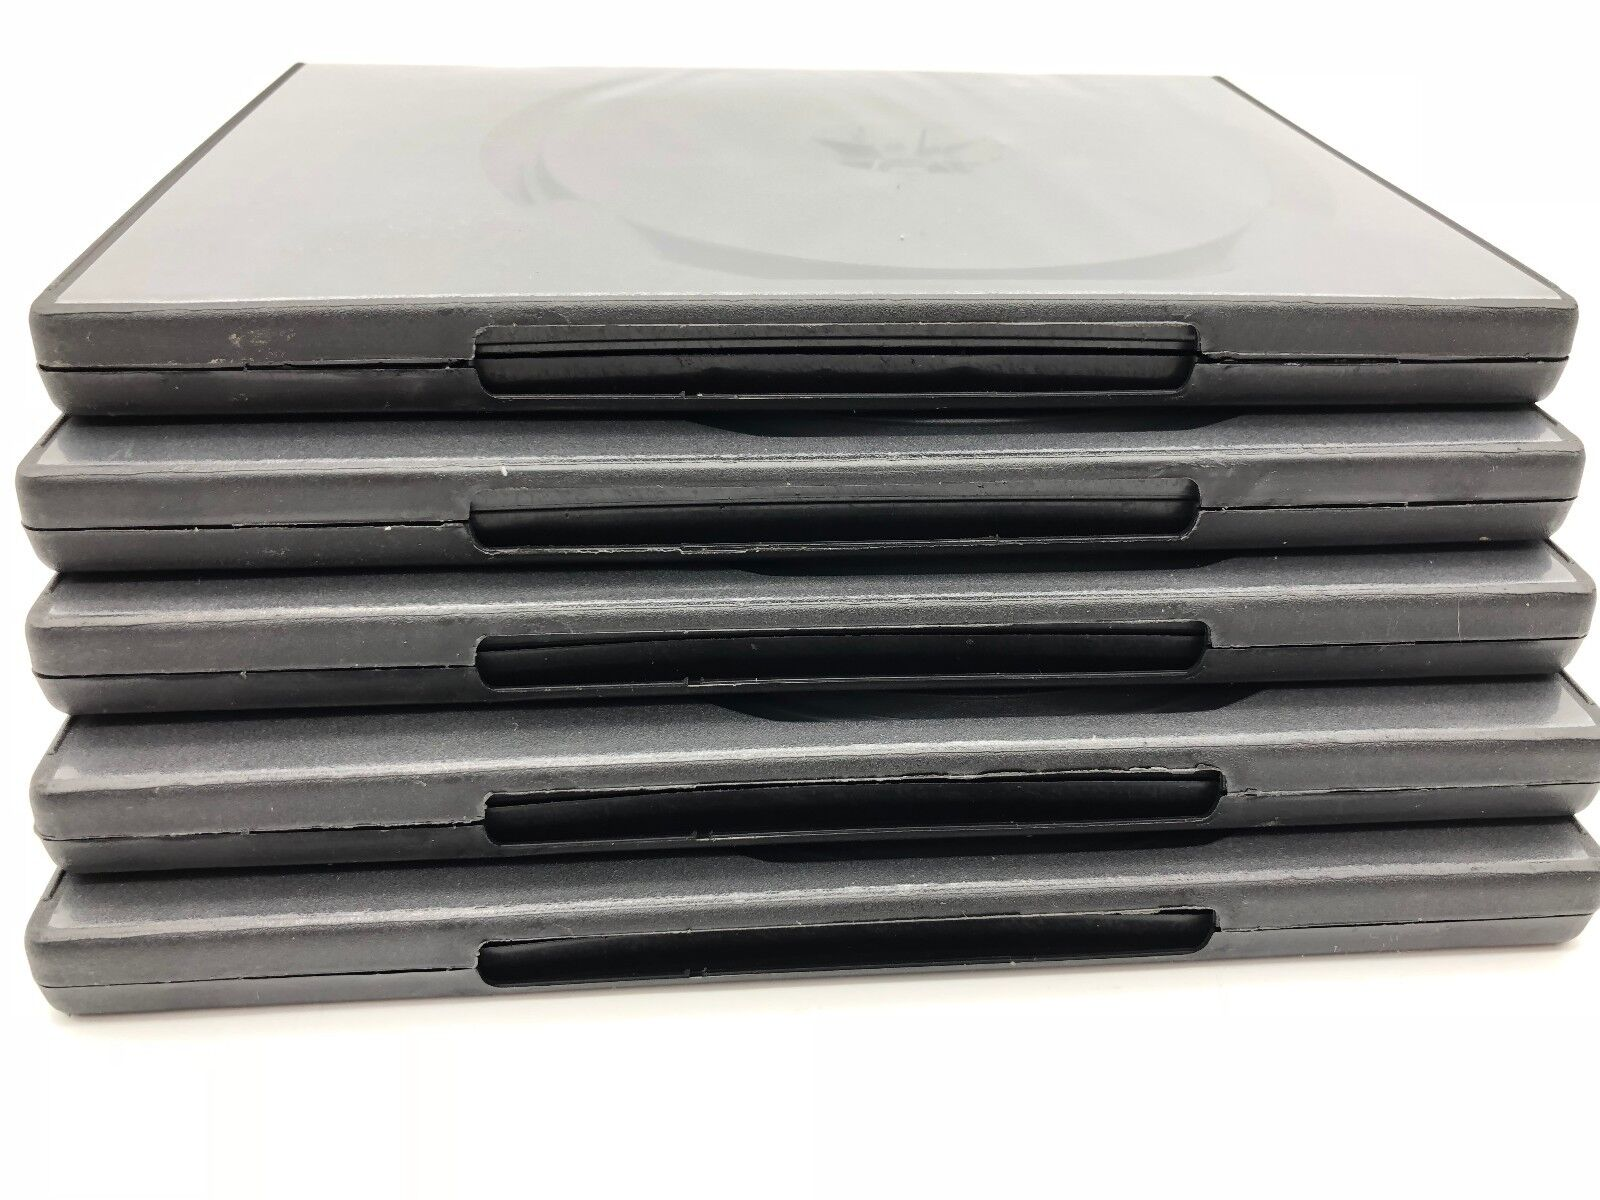 5 DOUBLE DVD, Blue Ray, Software, Game, Empty Cases, Black, Clear Cover, 14mm